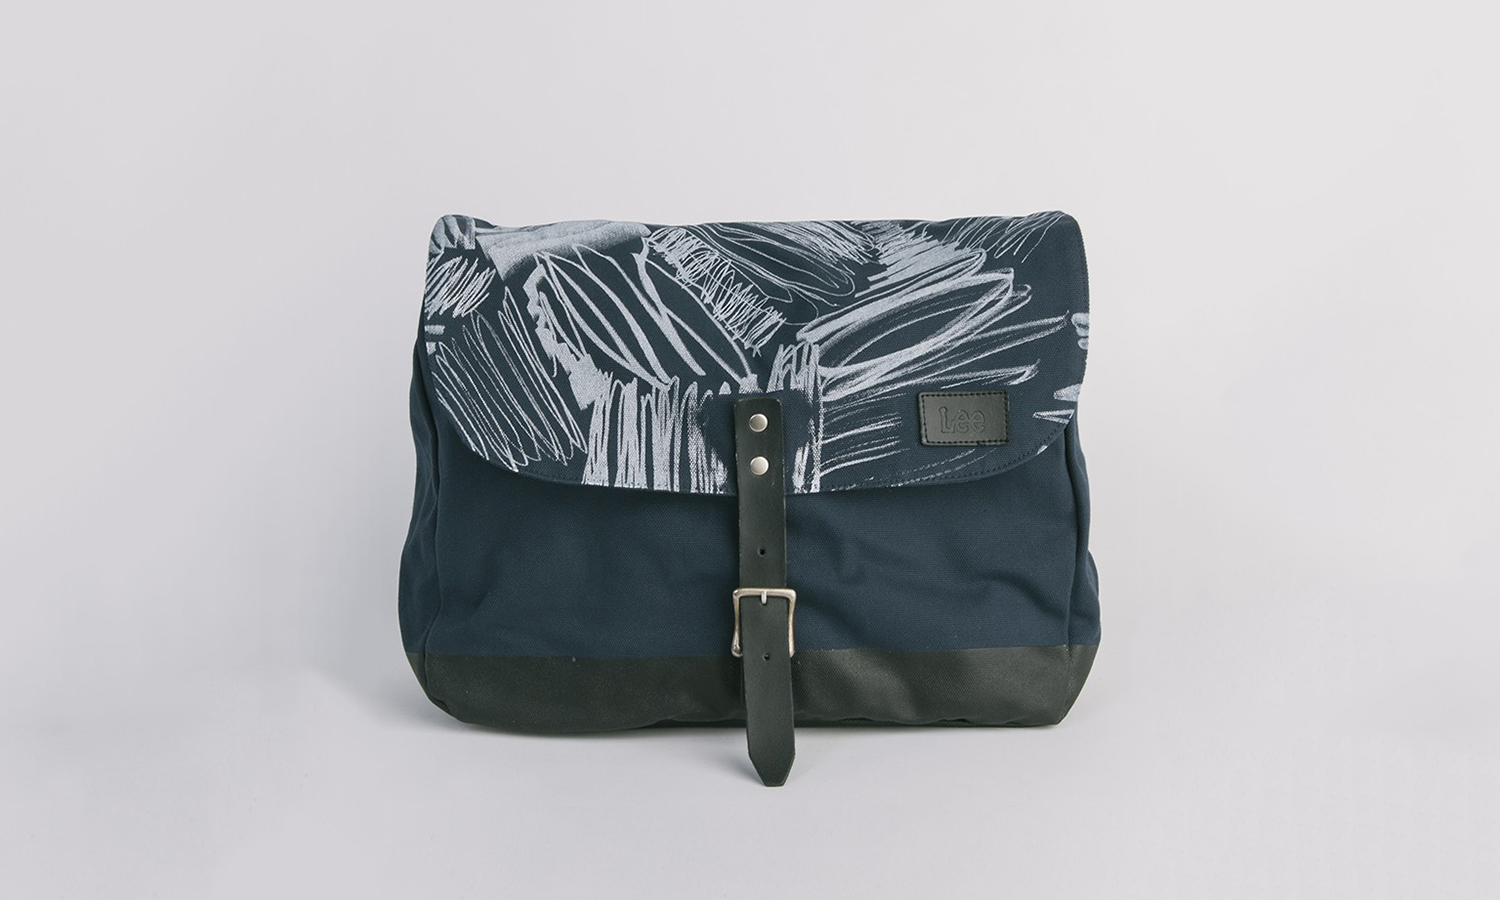 OTHER & Lee Bag Collection by Marcus James